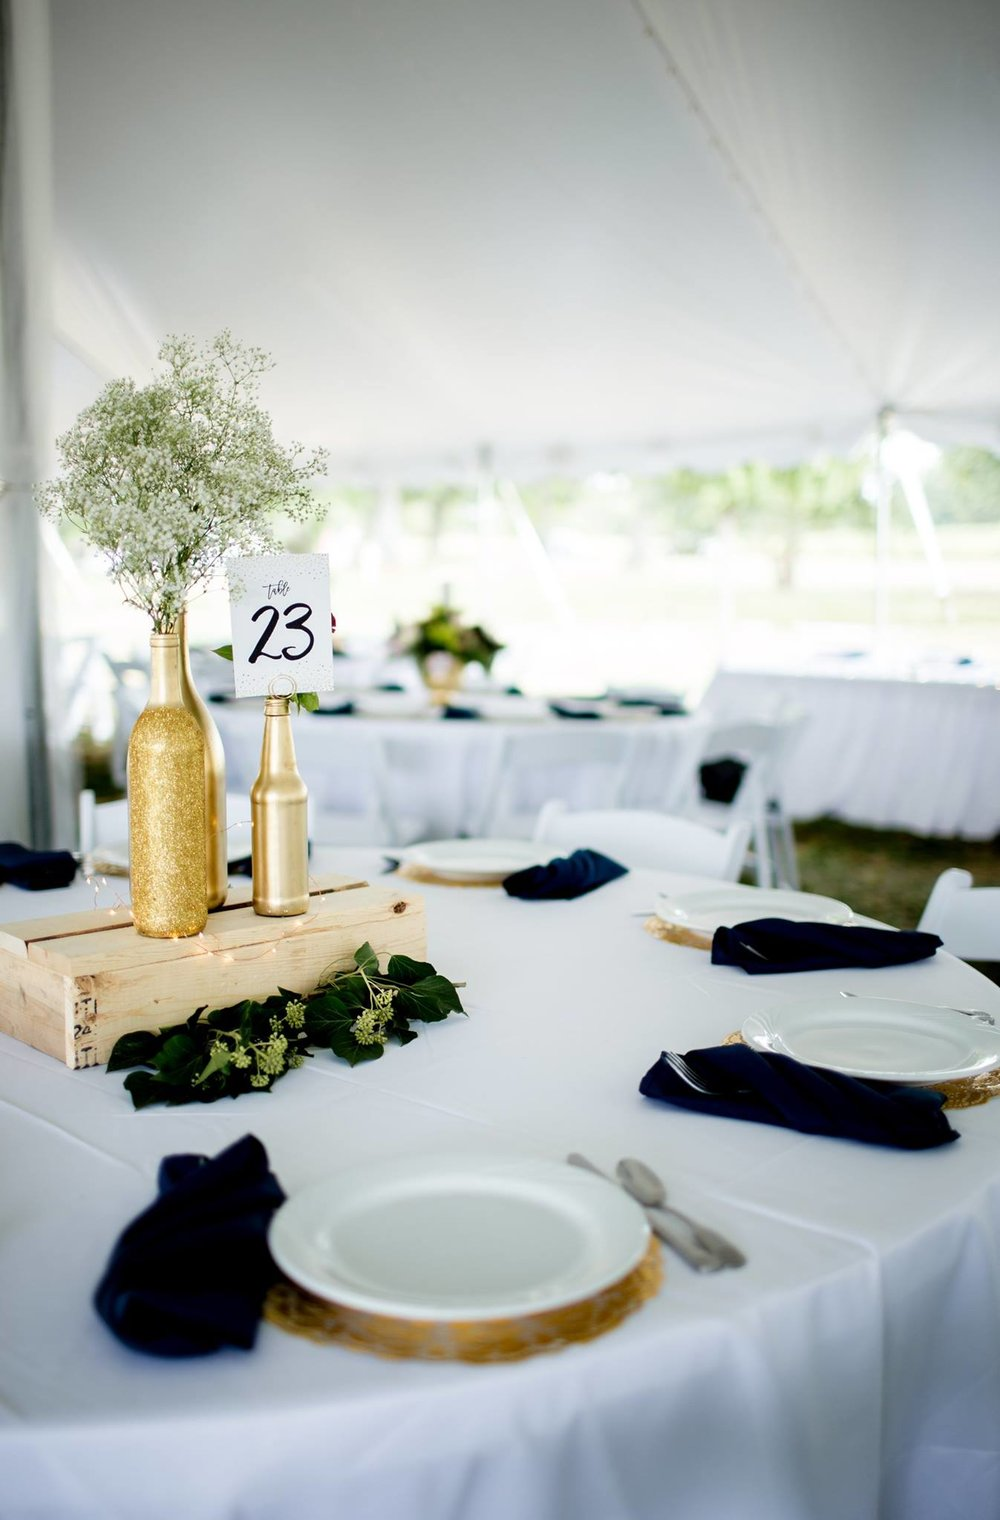 jen & carson | table numbers   photo credit: onethirtynine photography